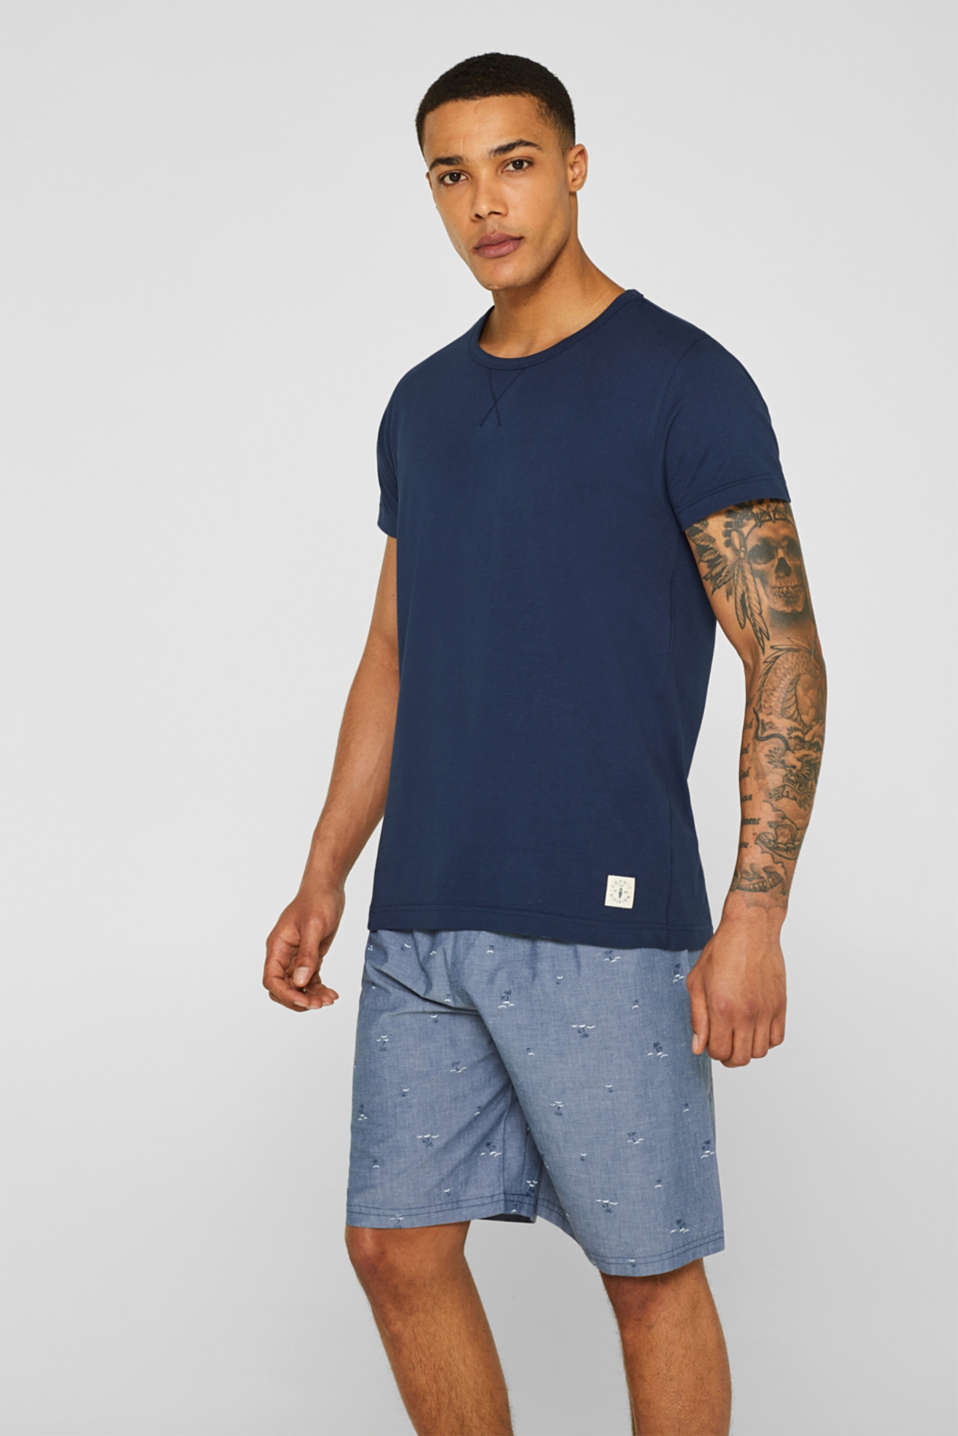 Esprit - Pyjamas with printed shorts, 100% cotton